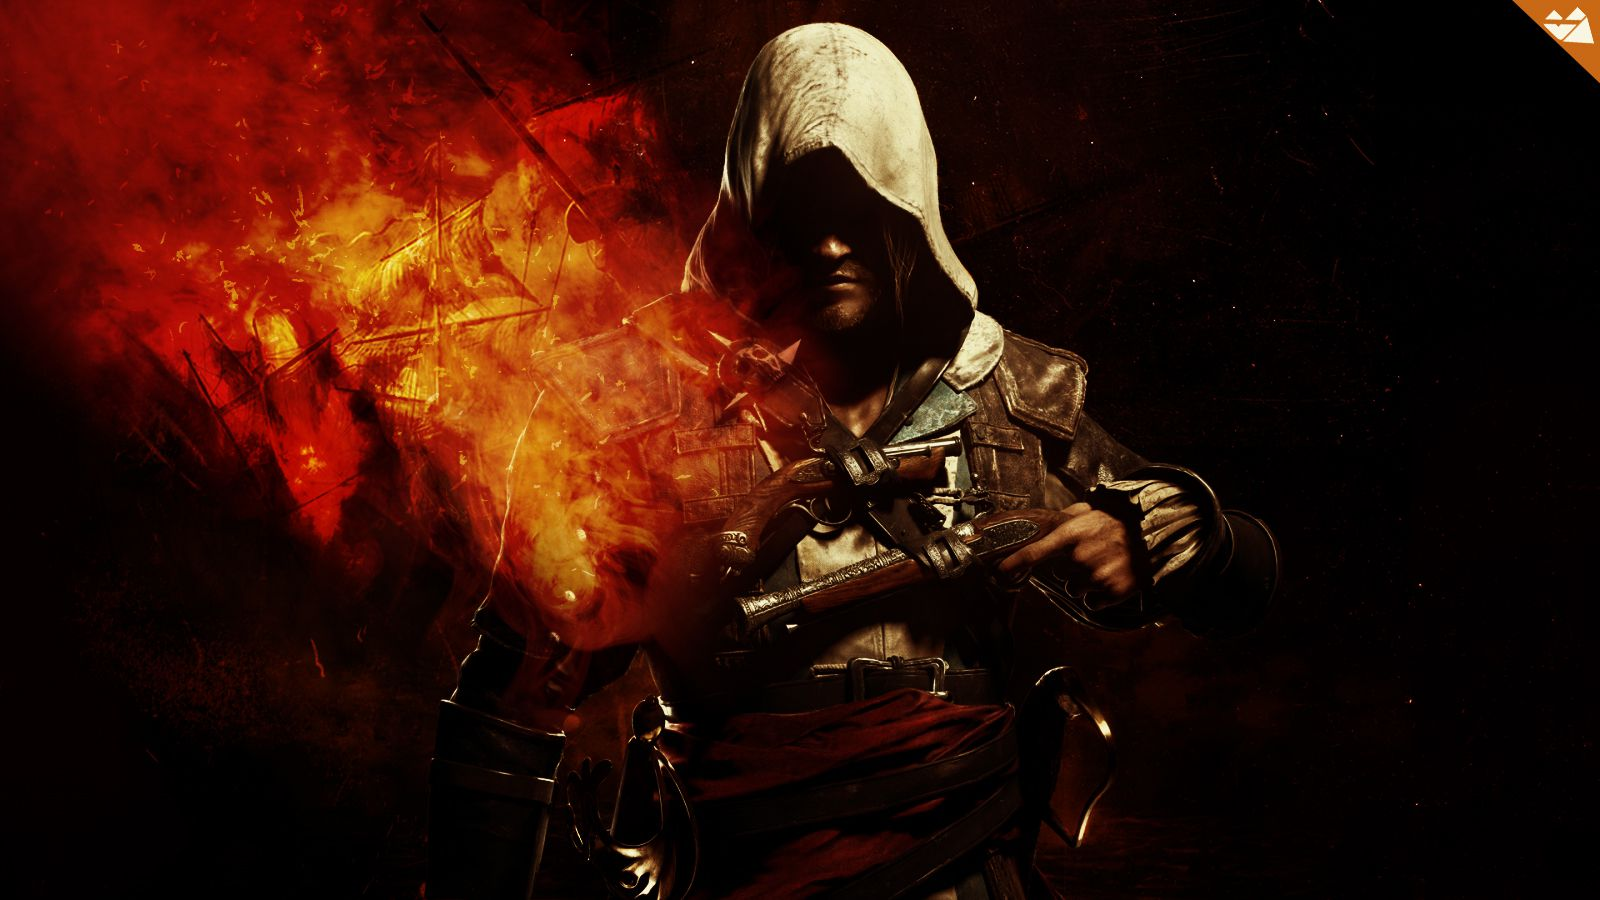 Download Assassins Creed Black Flag 4 Game HD Wallpaper Search more 1600x900